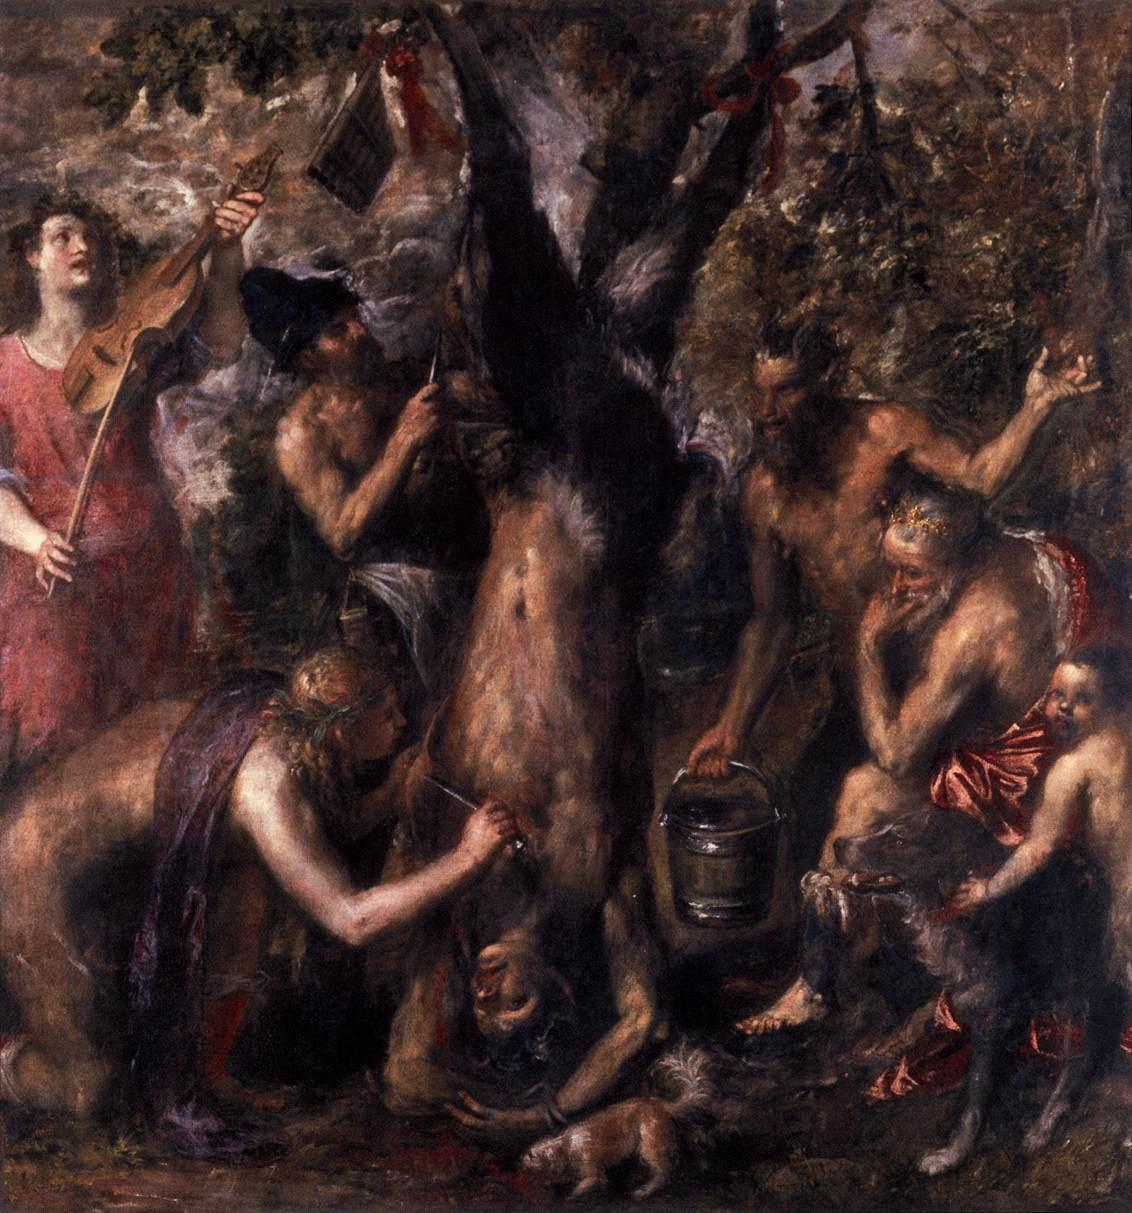 The Flaying of Marsyas, one of Titian's last works (1570's) illustrates Ovid's myth of the satyr Marsyas being skinned alive by the god Apollo after unsuccessfully challenging him to a musical battle. – Archidiocese Olomouc, Archiepiscopal Palace, Picture Gallery